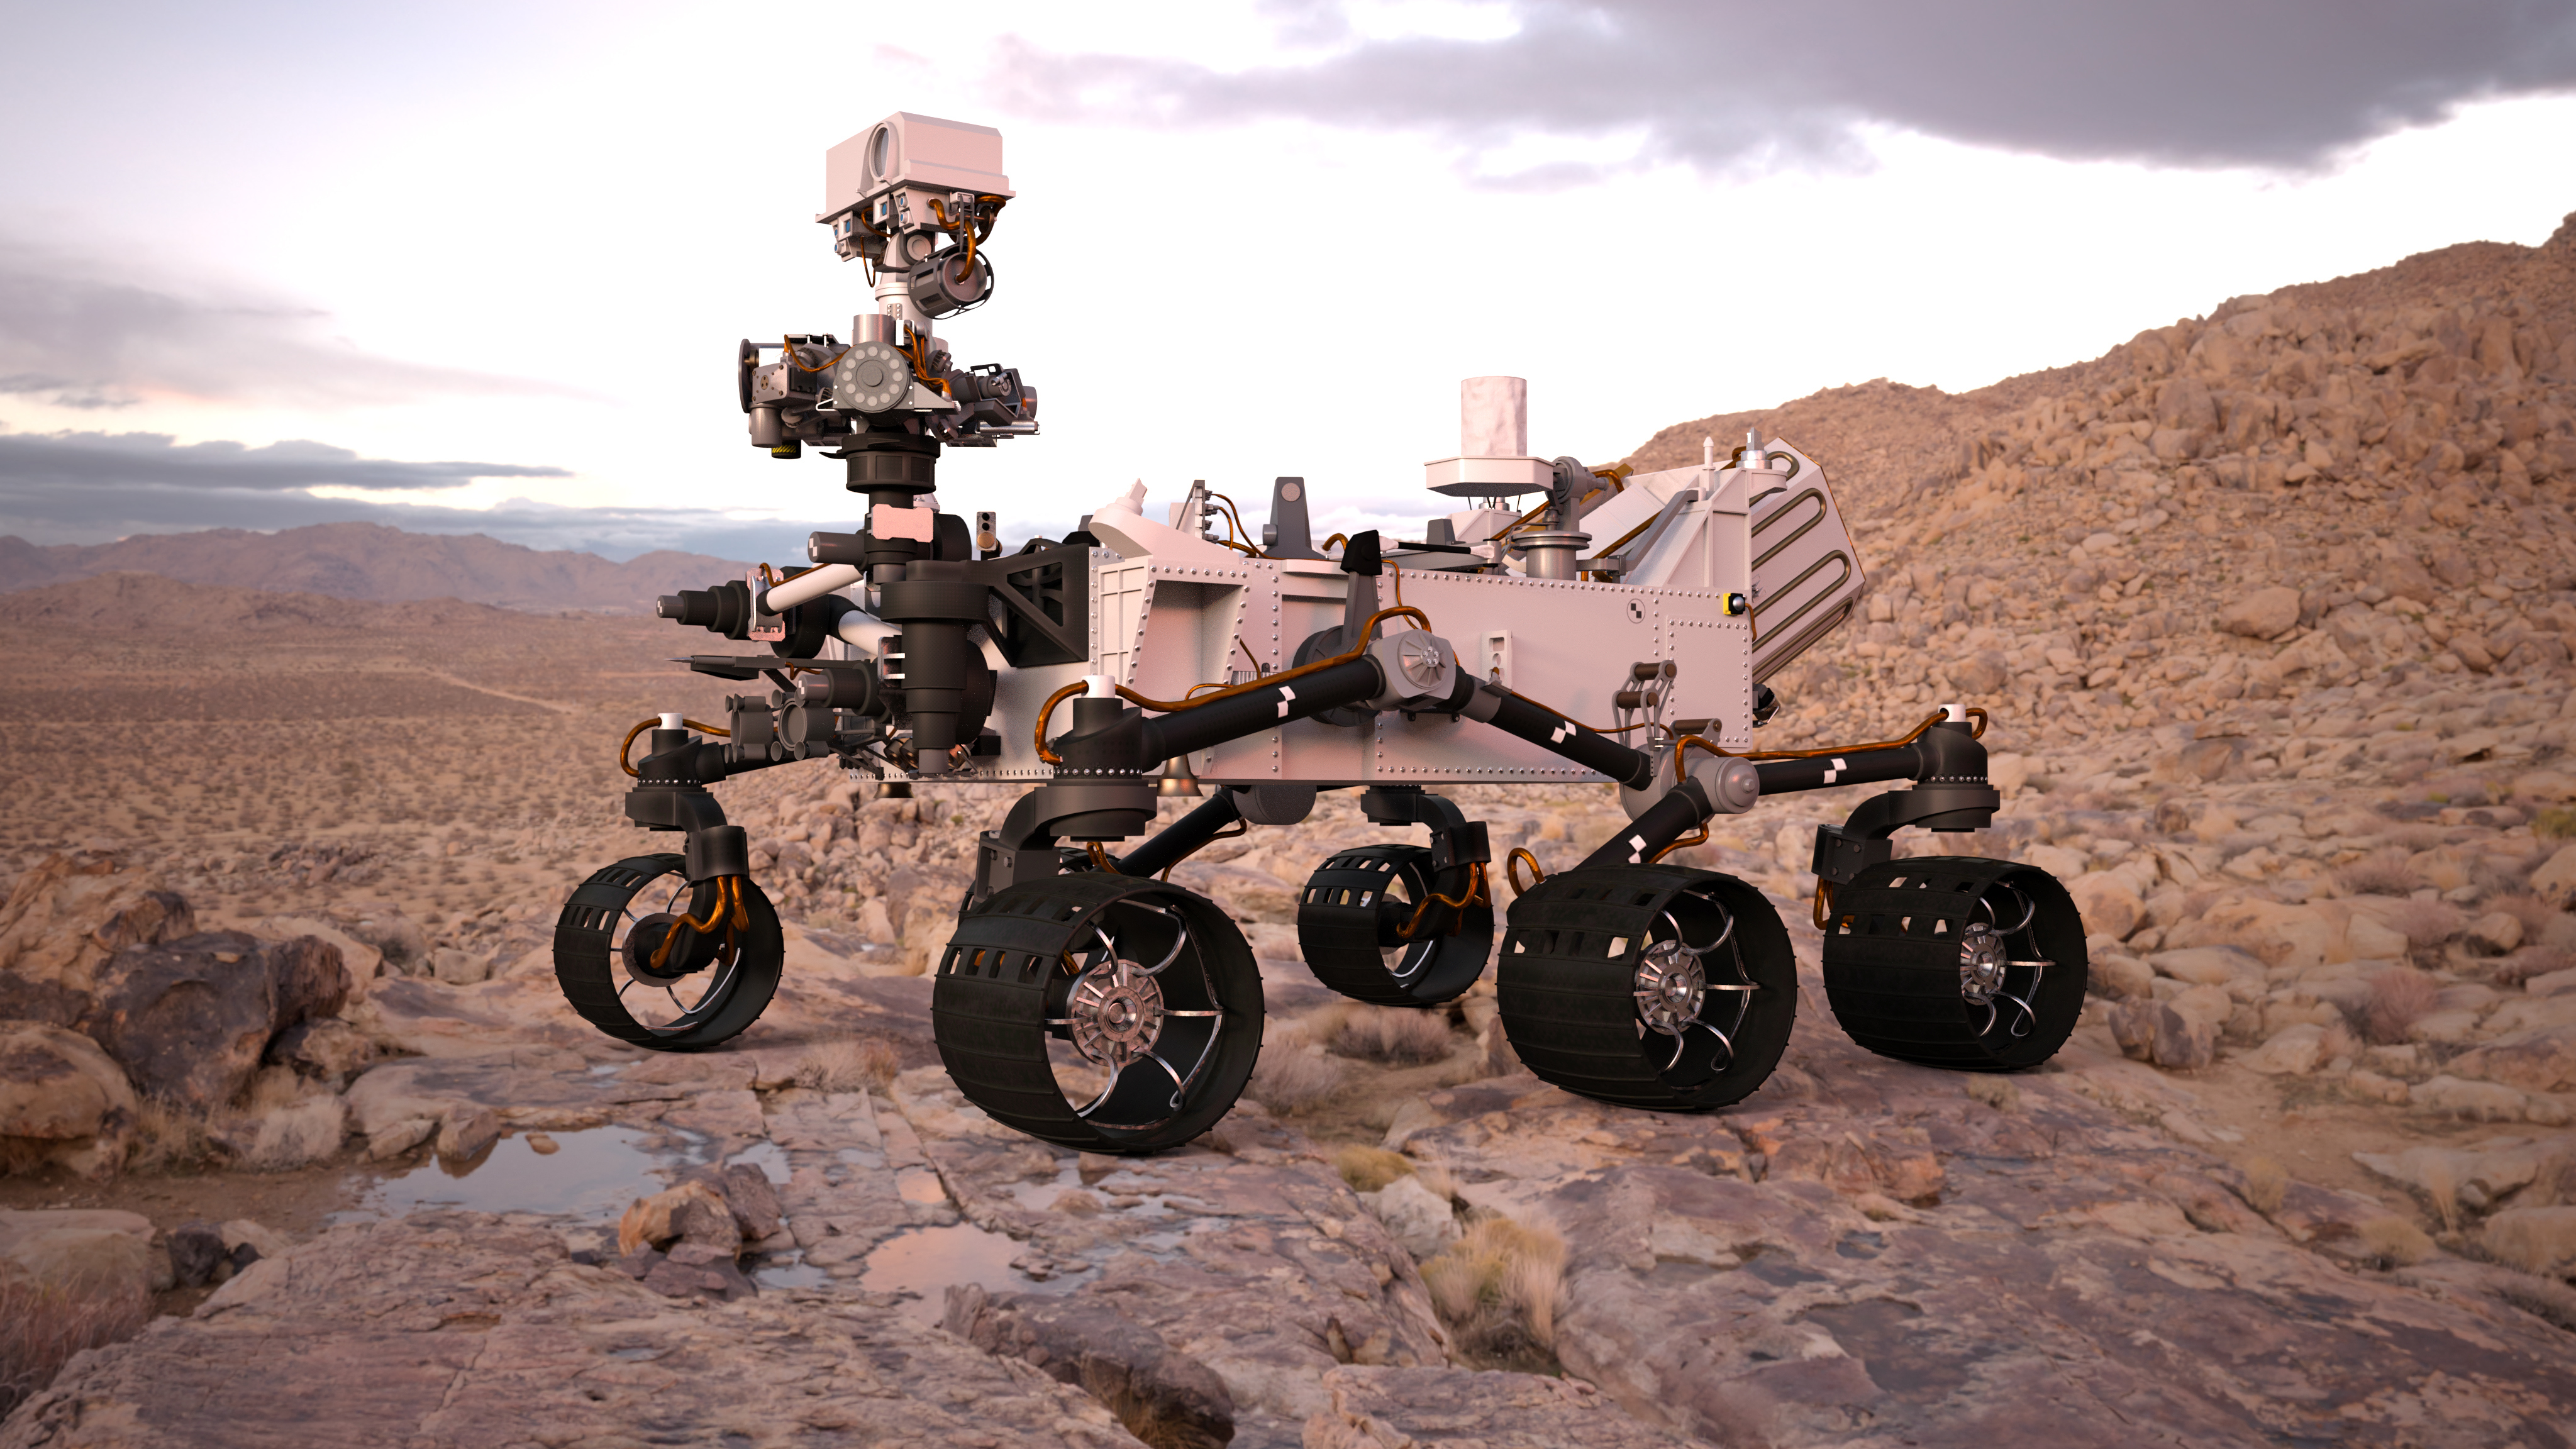 3D Illustration Of A Mars Rover